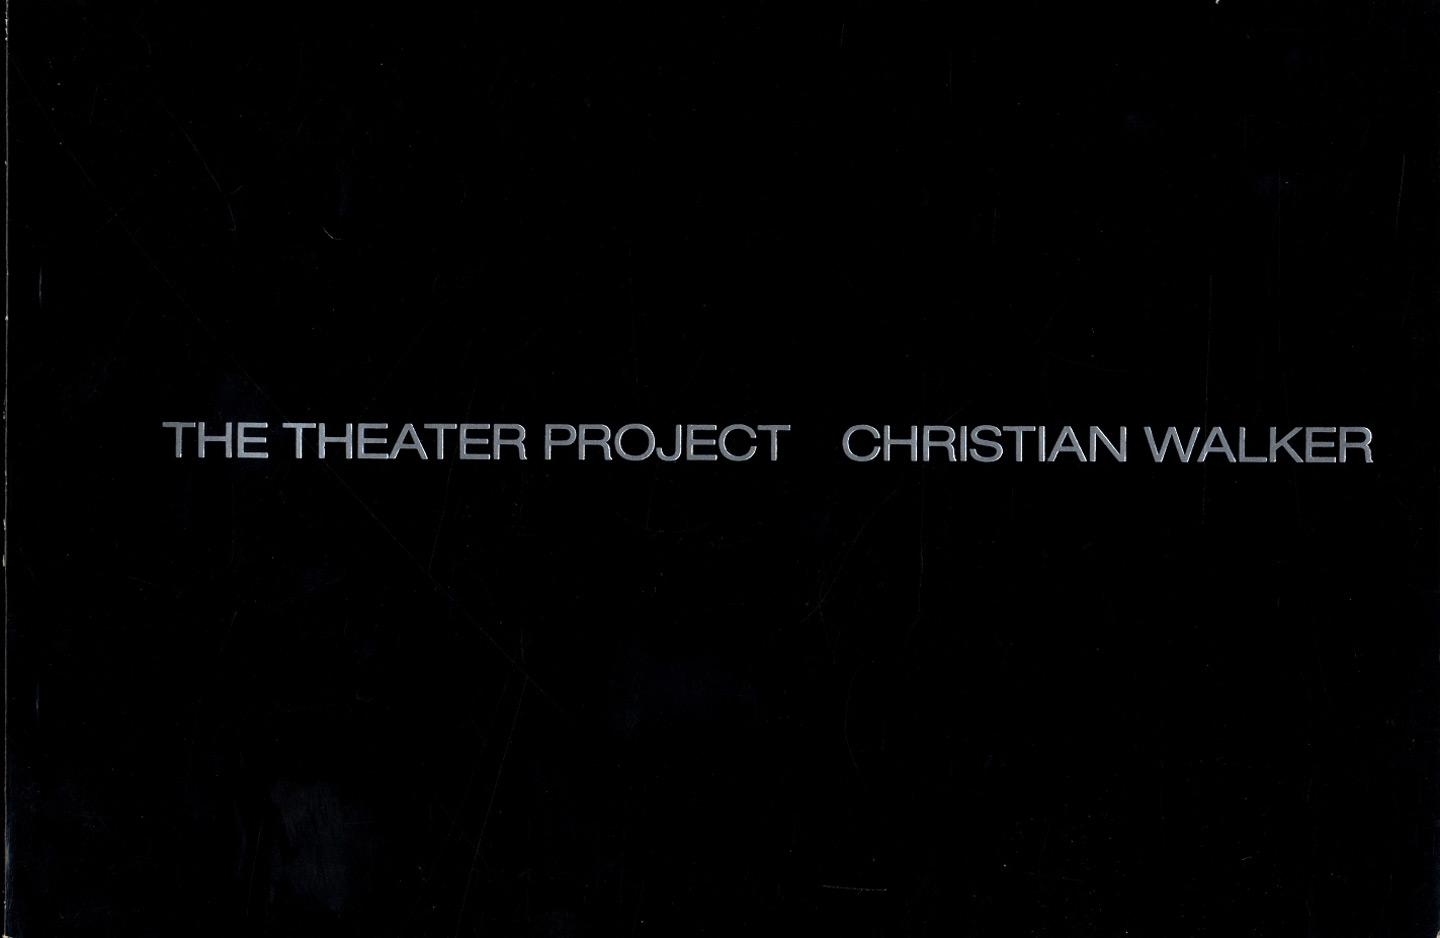 Christian Walker: The Theater Project (Includes 2 Additional Group Exhibition Catalogues)